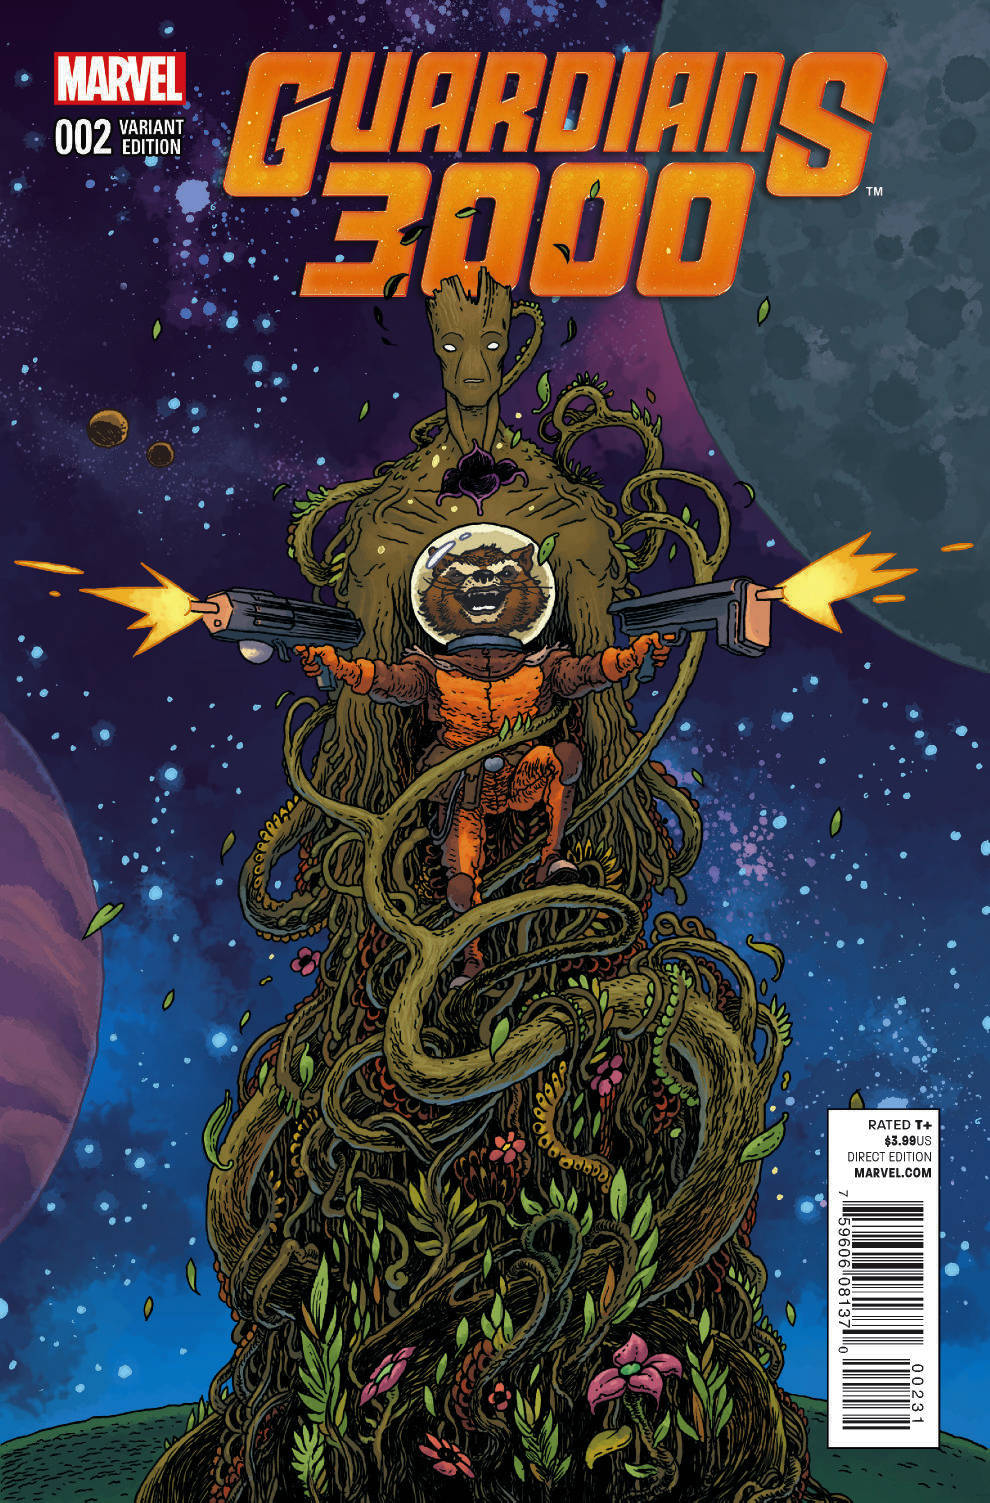 GUARDIANS 3000 #2 ROCKET RACCOON AND GROOT BERTRAM VAR